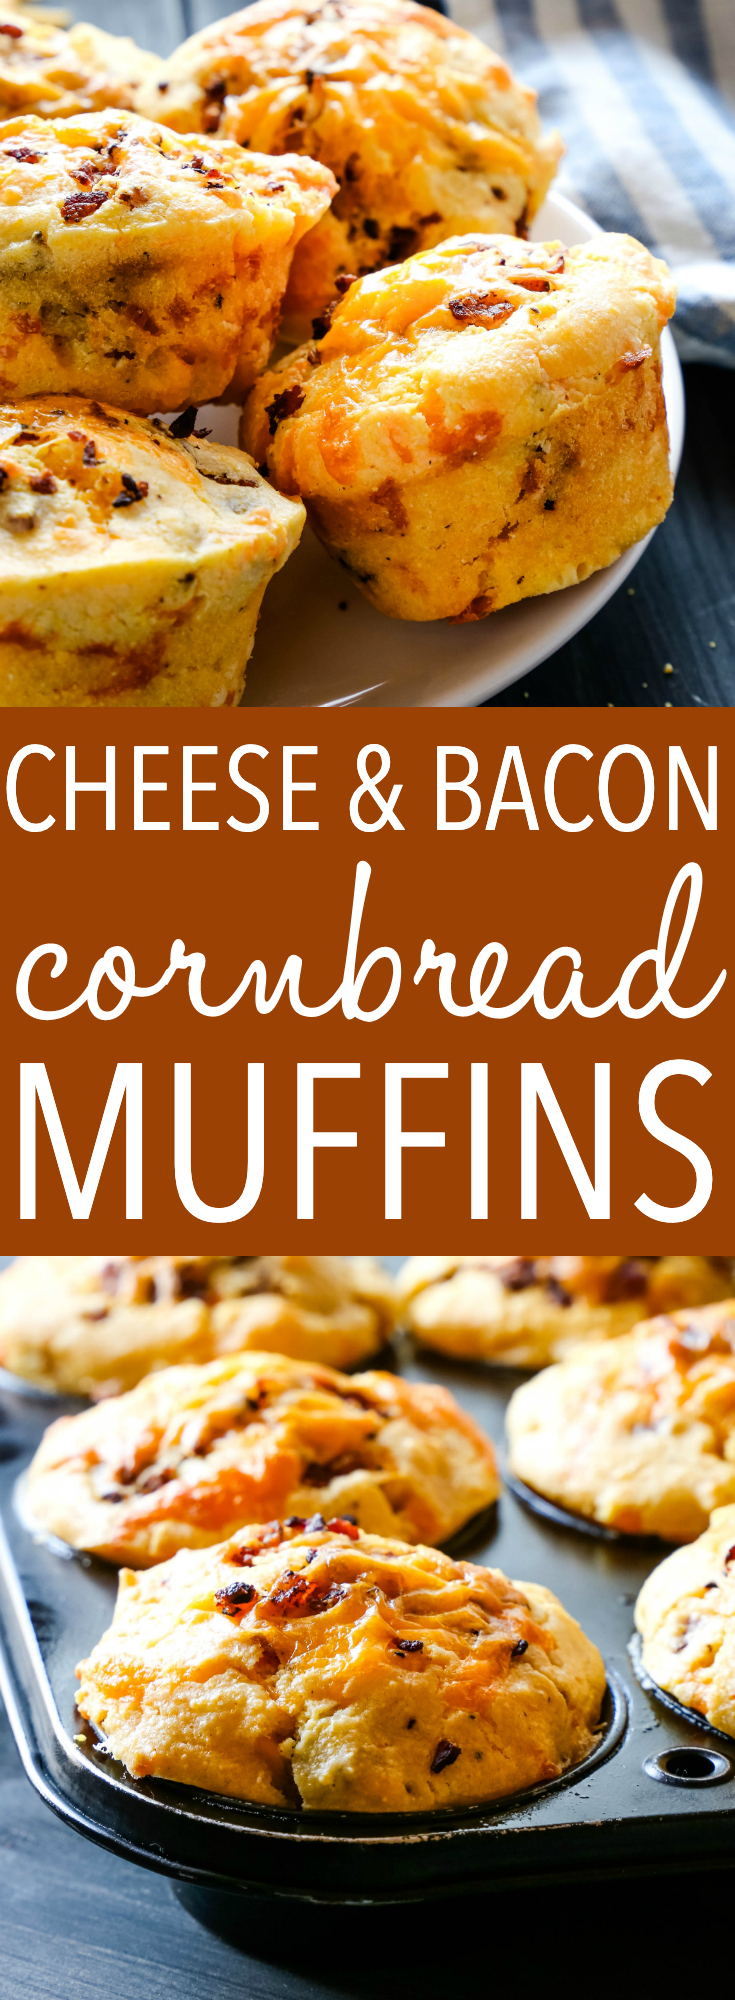 These Cheddar Cheese and Bacon Cornbread Muffins make the perfect snack or side dish for fall! Perfectly savoury and perfect with soup, stews, and for the holidays! Recipe from thebusybaker.ca! #muffins #cornbread #cornmeal #corn #fall #winter #soup #stew #bacon #cheese #savory via @busybakerblog